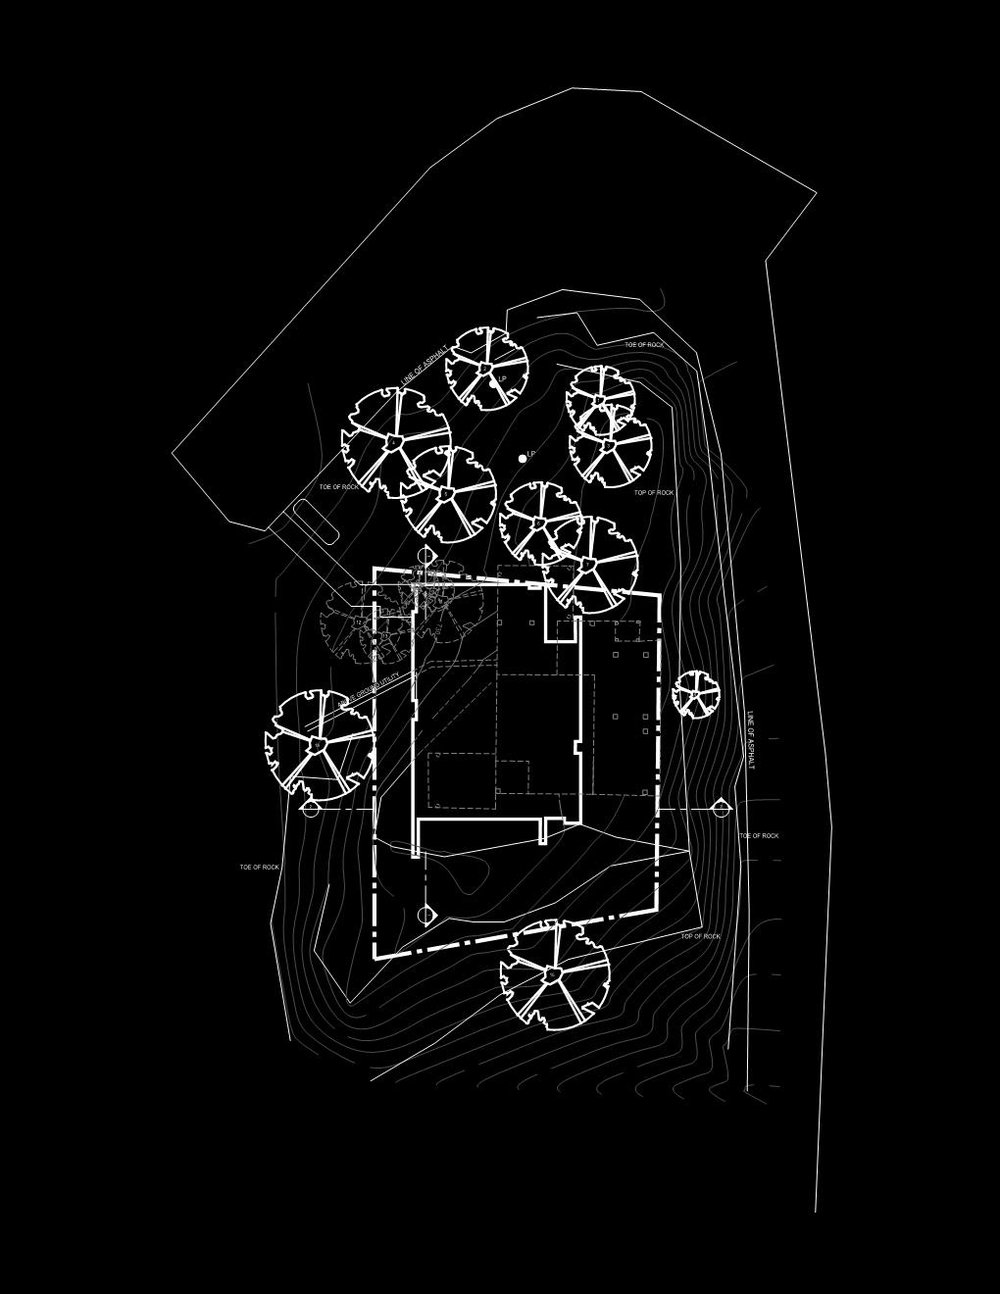 McKinley Burkart_Whistler_Site Plan_inverted.jpg